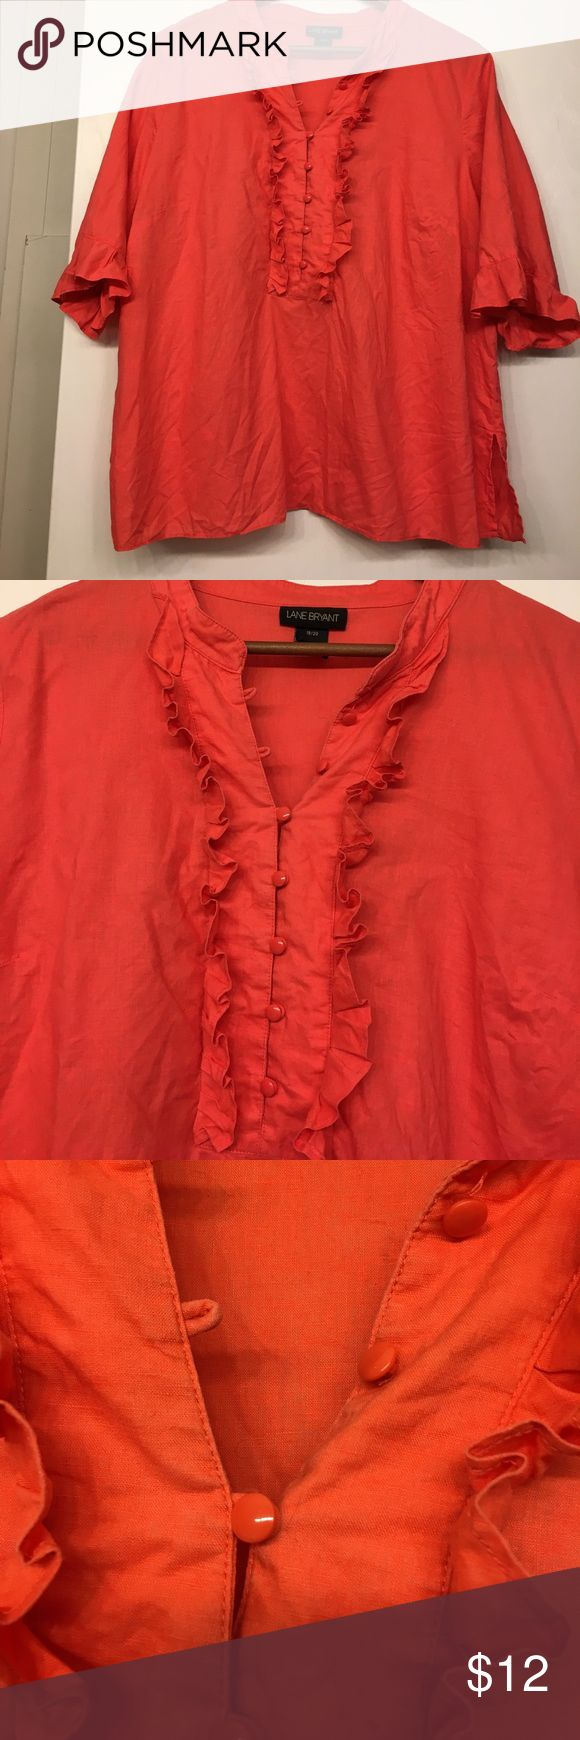 Lane Bryant coral Blouse w ruffle front & sleeves Lane Bryant coral Blouse w ruffle front & sleeve - 18/20 - 52% linen 48% cotton - small mark on front below details Lane Bryant Tops Blouses